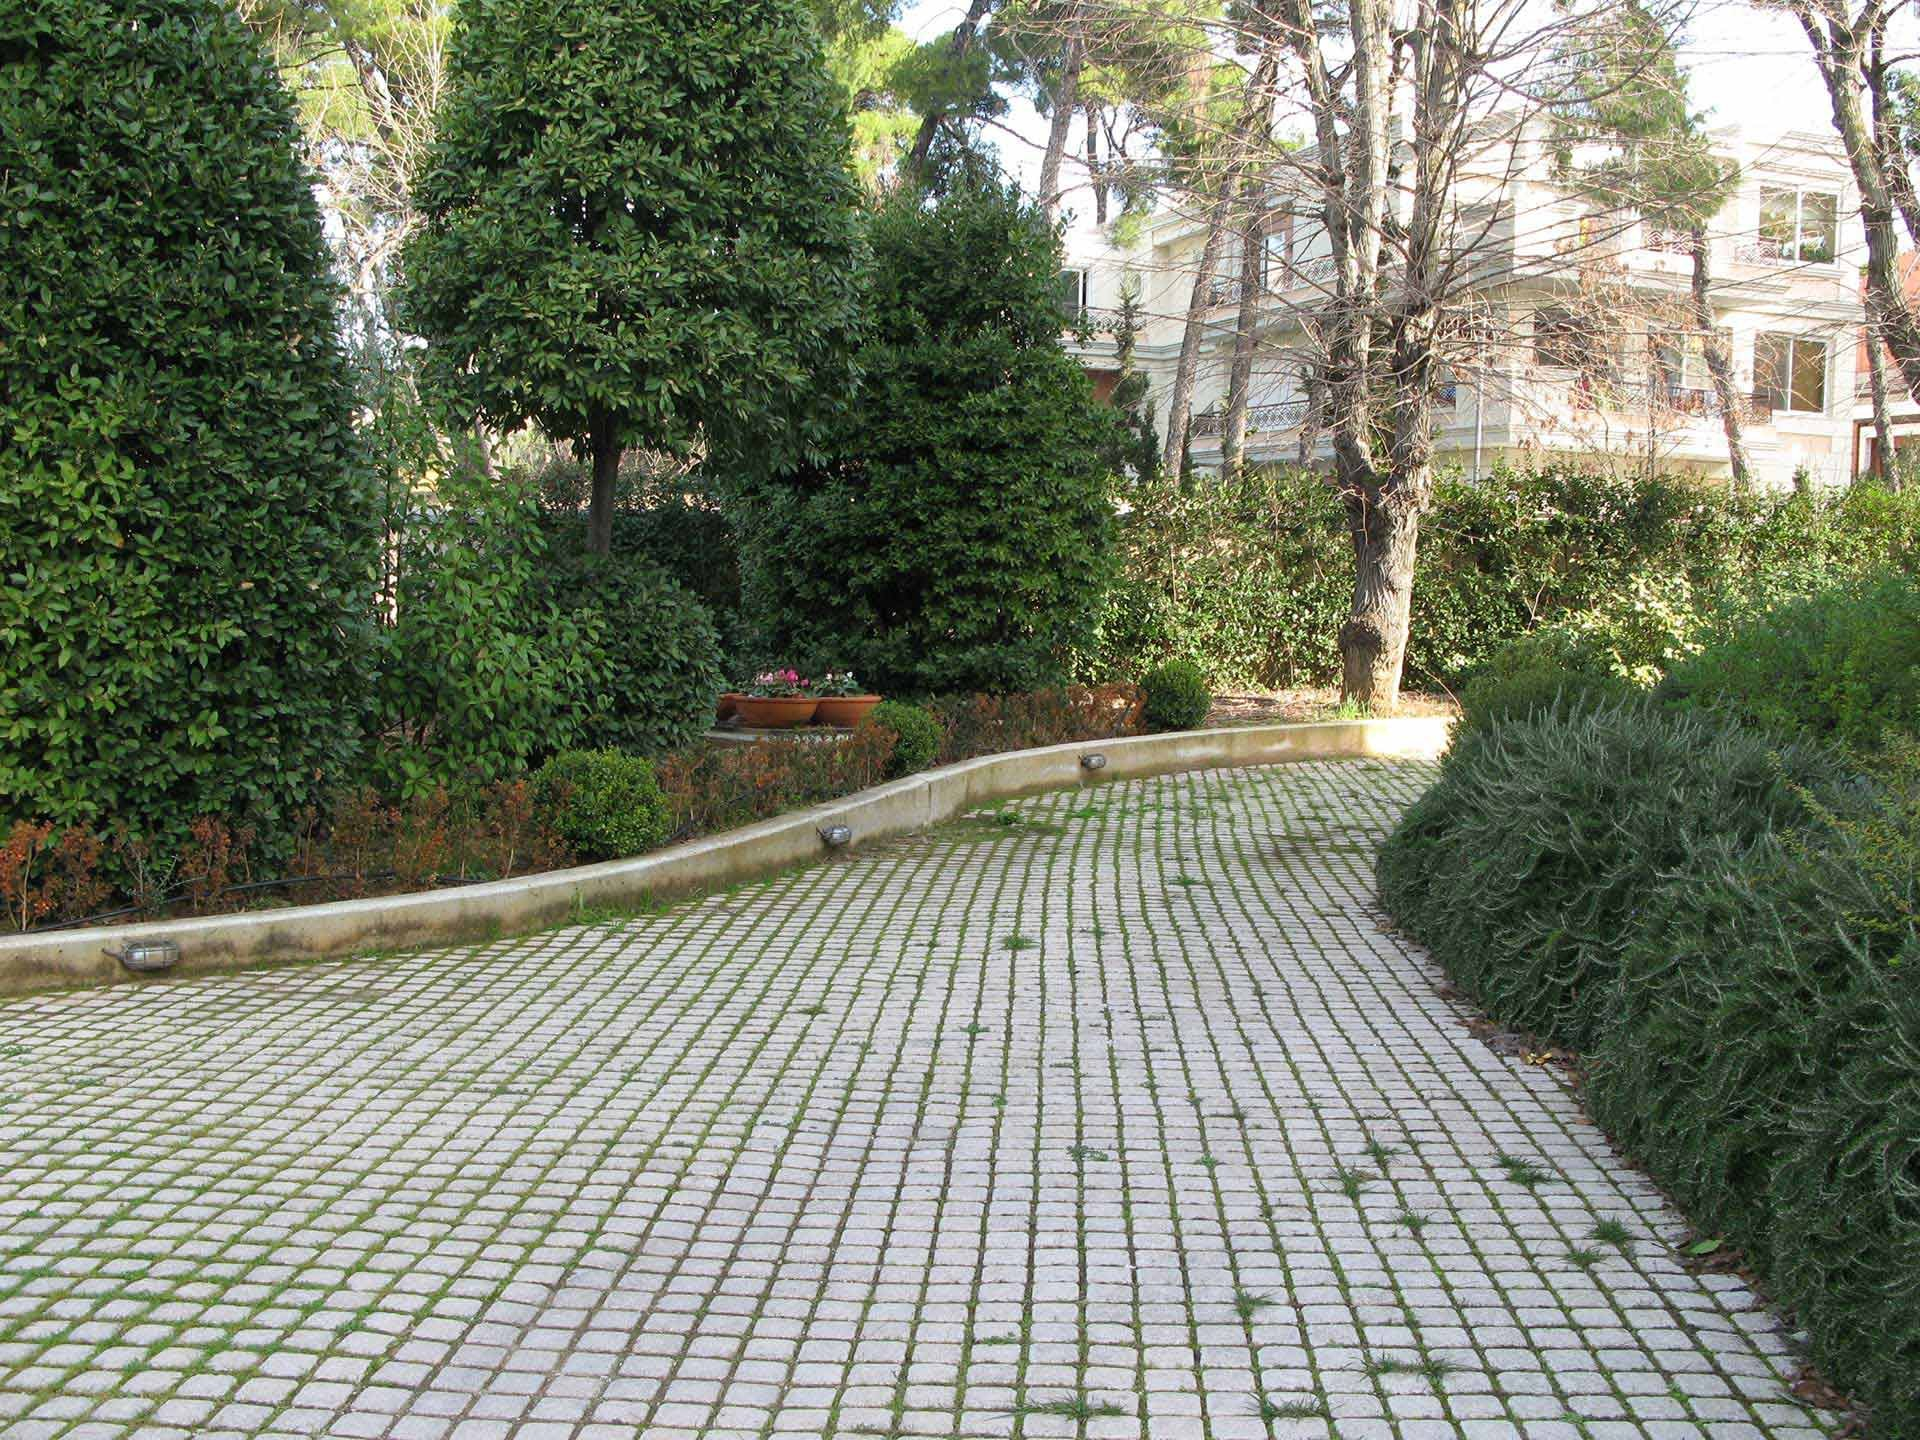 OUTSIDE AREA - GARDEN